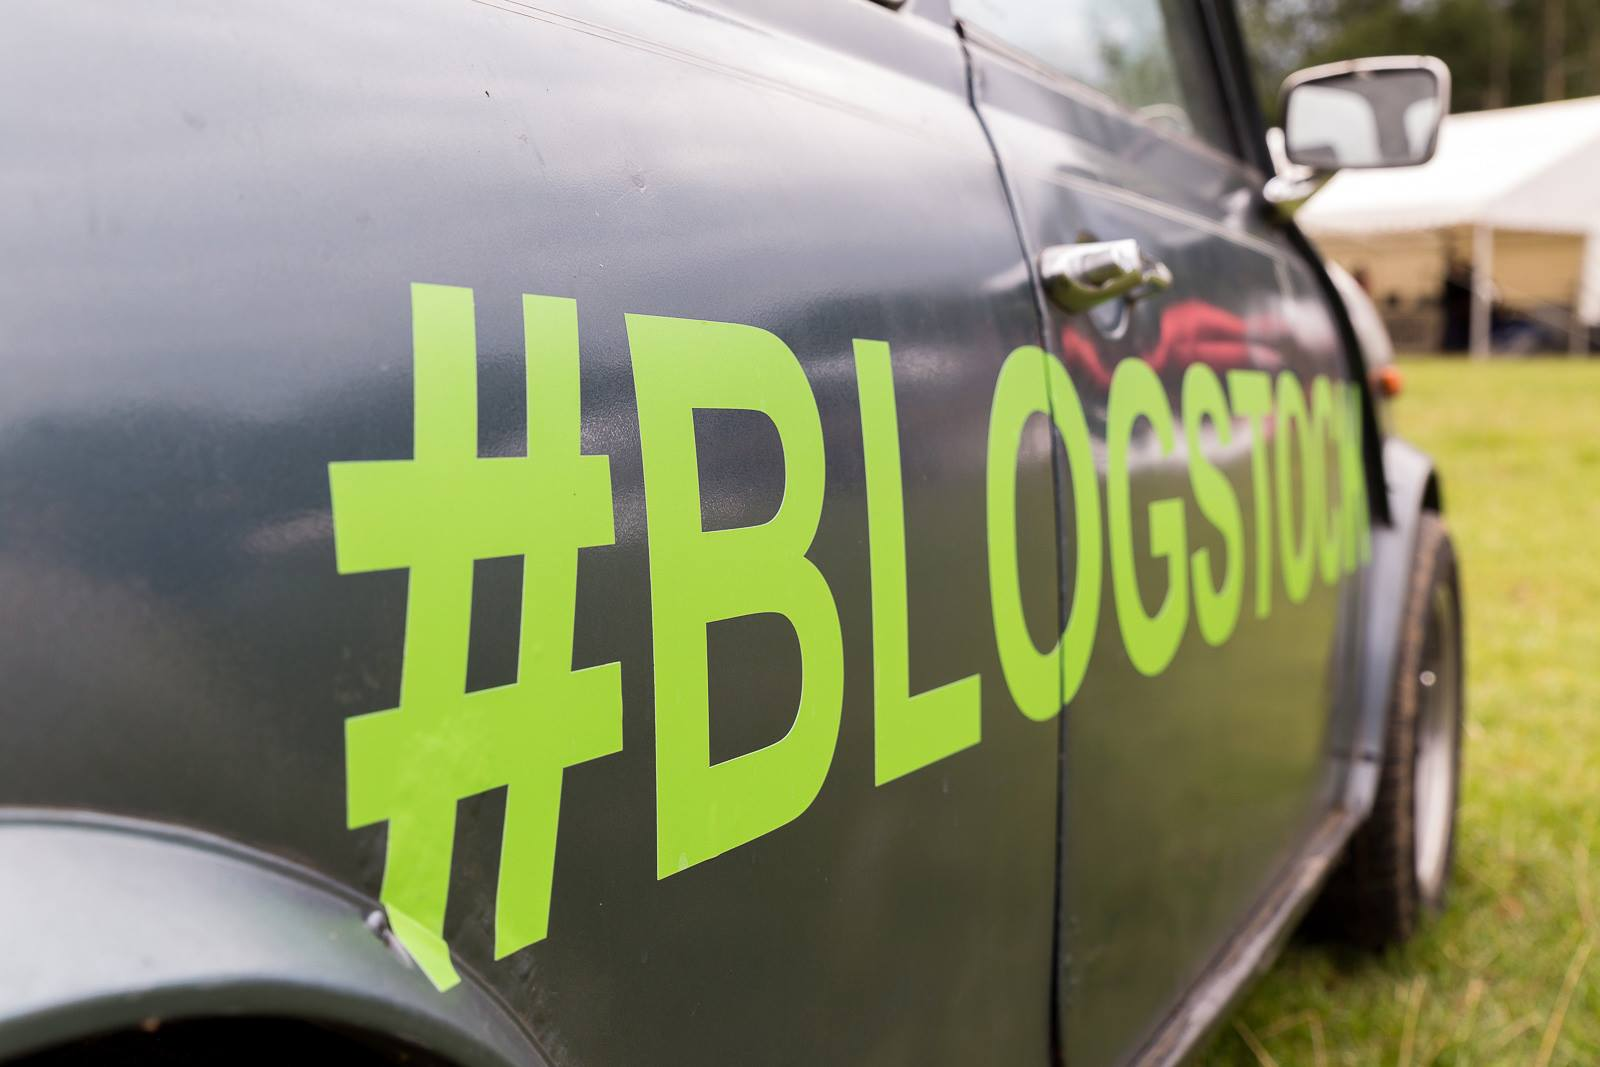 BlogStock car close up